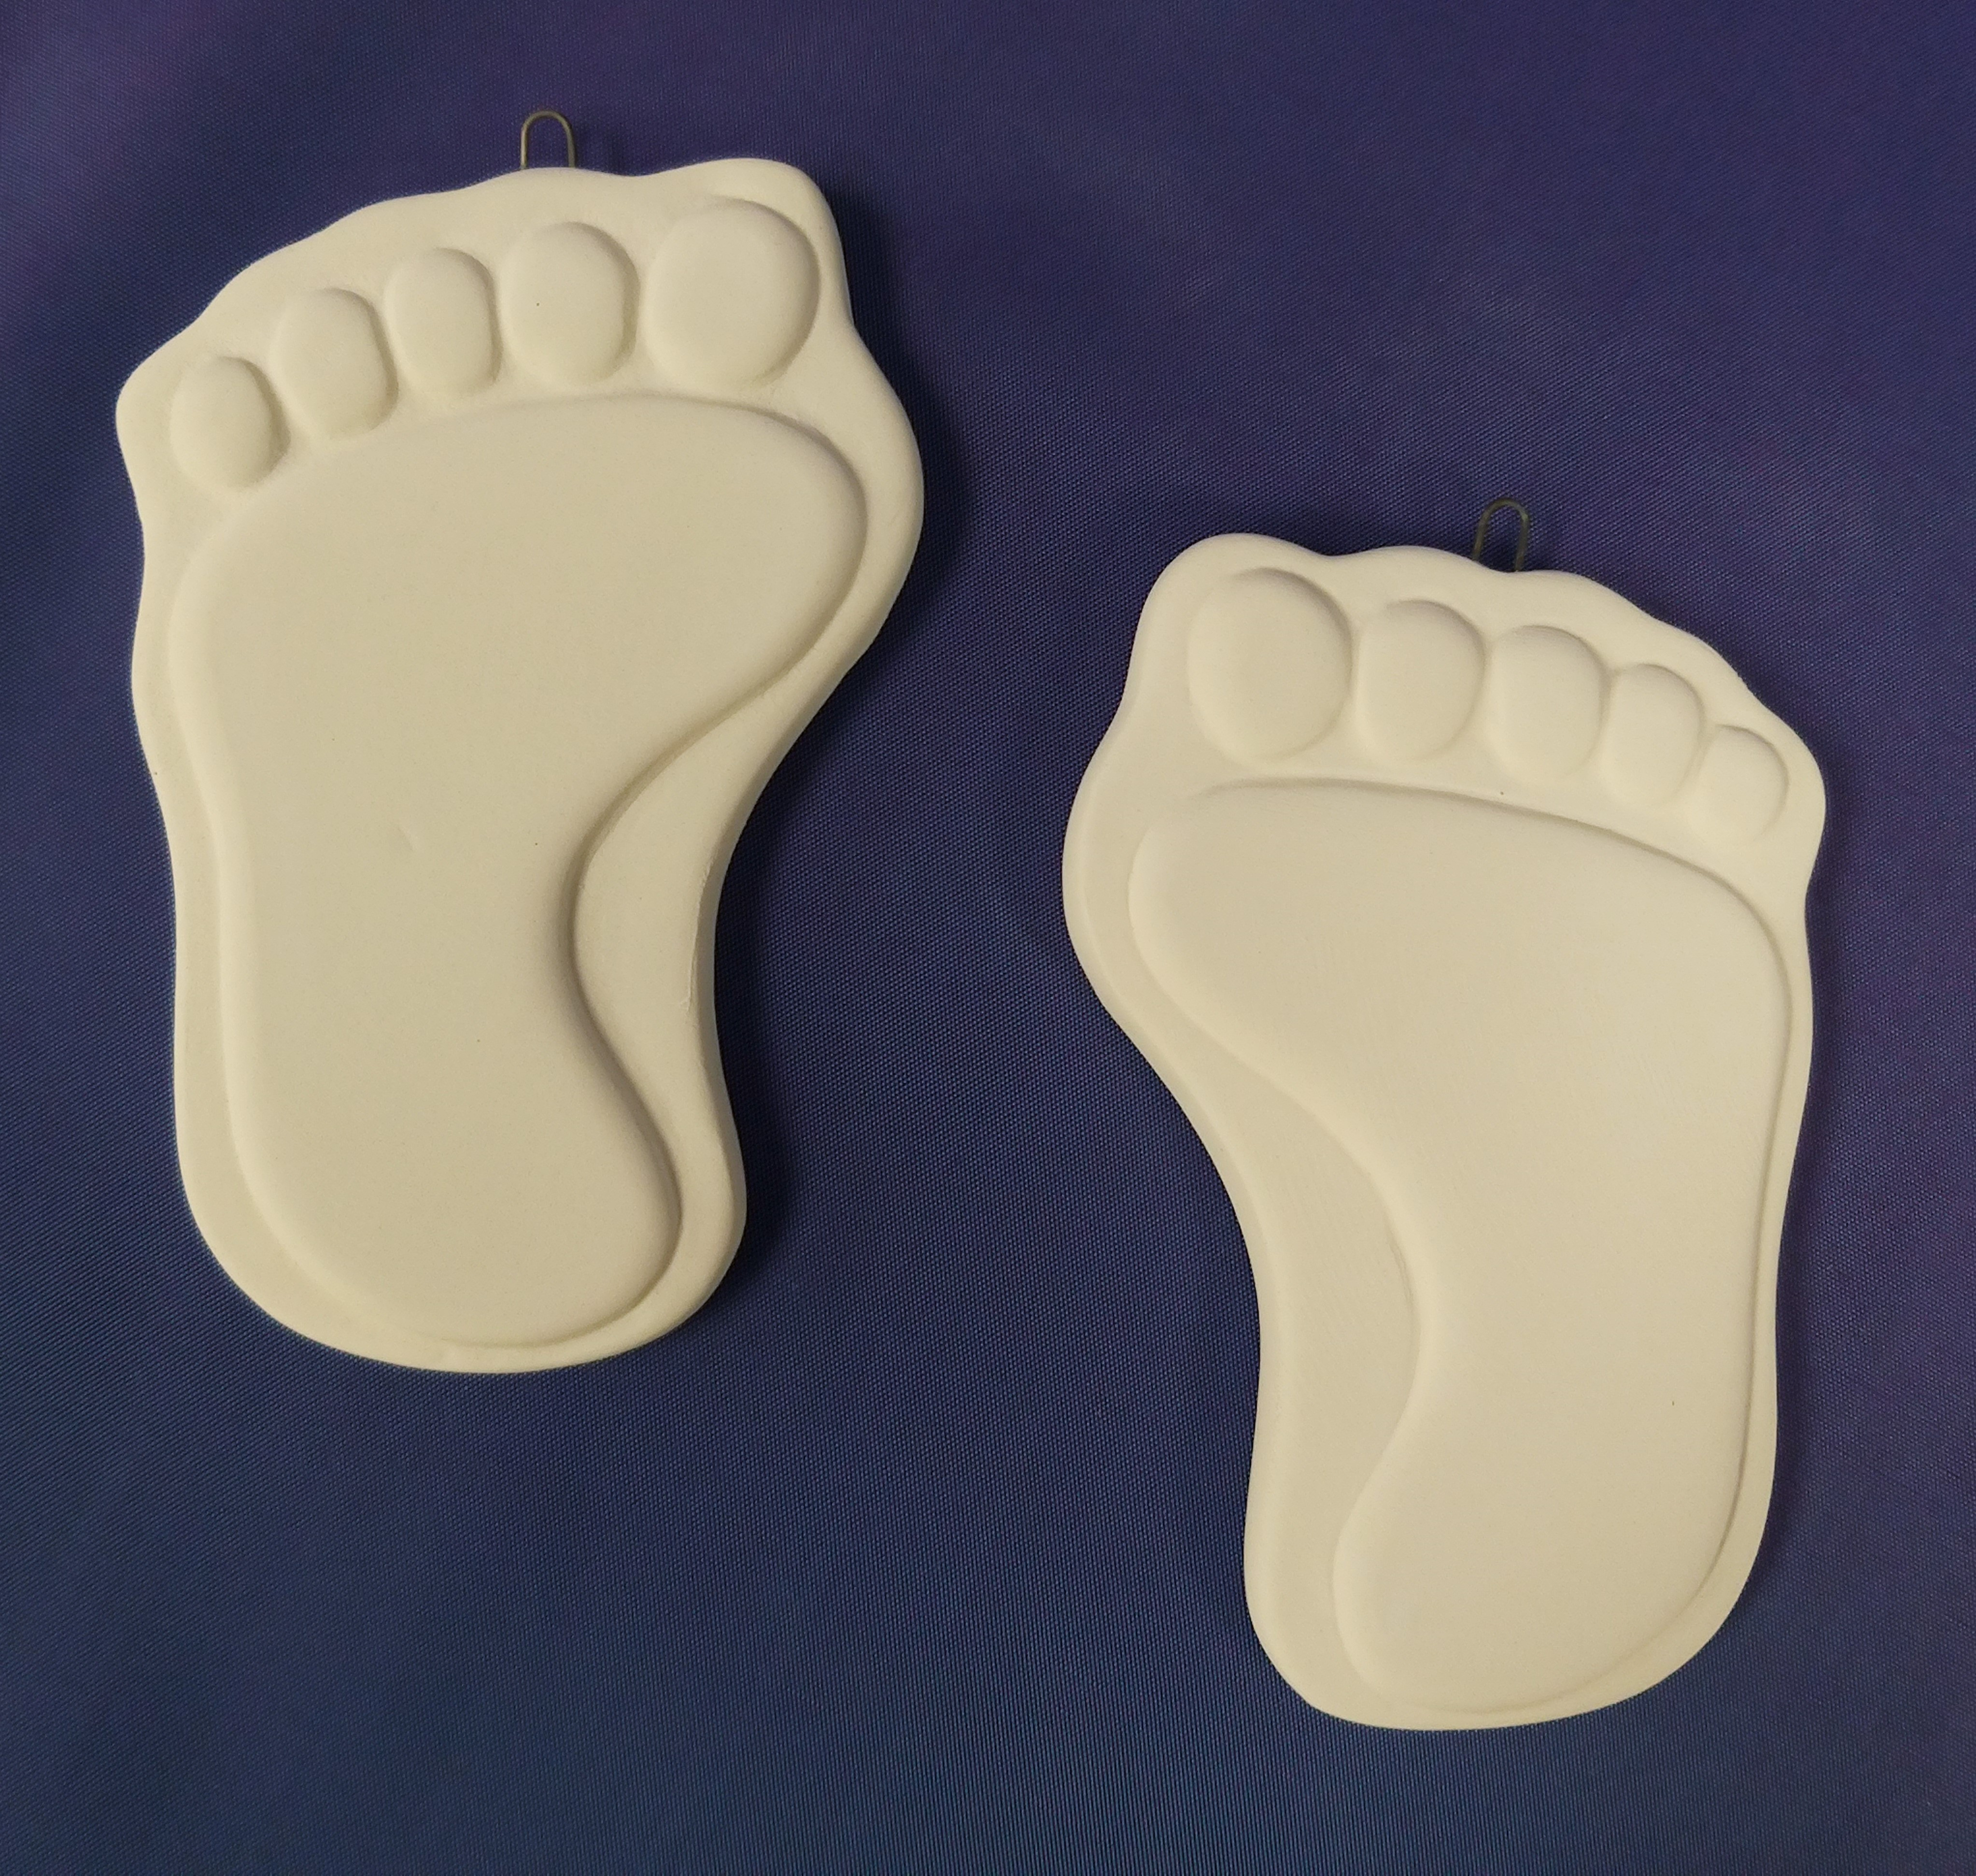 Baby Foot with wire hanger